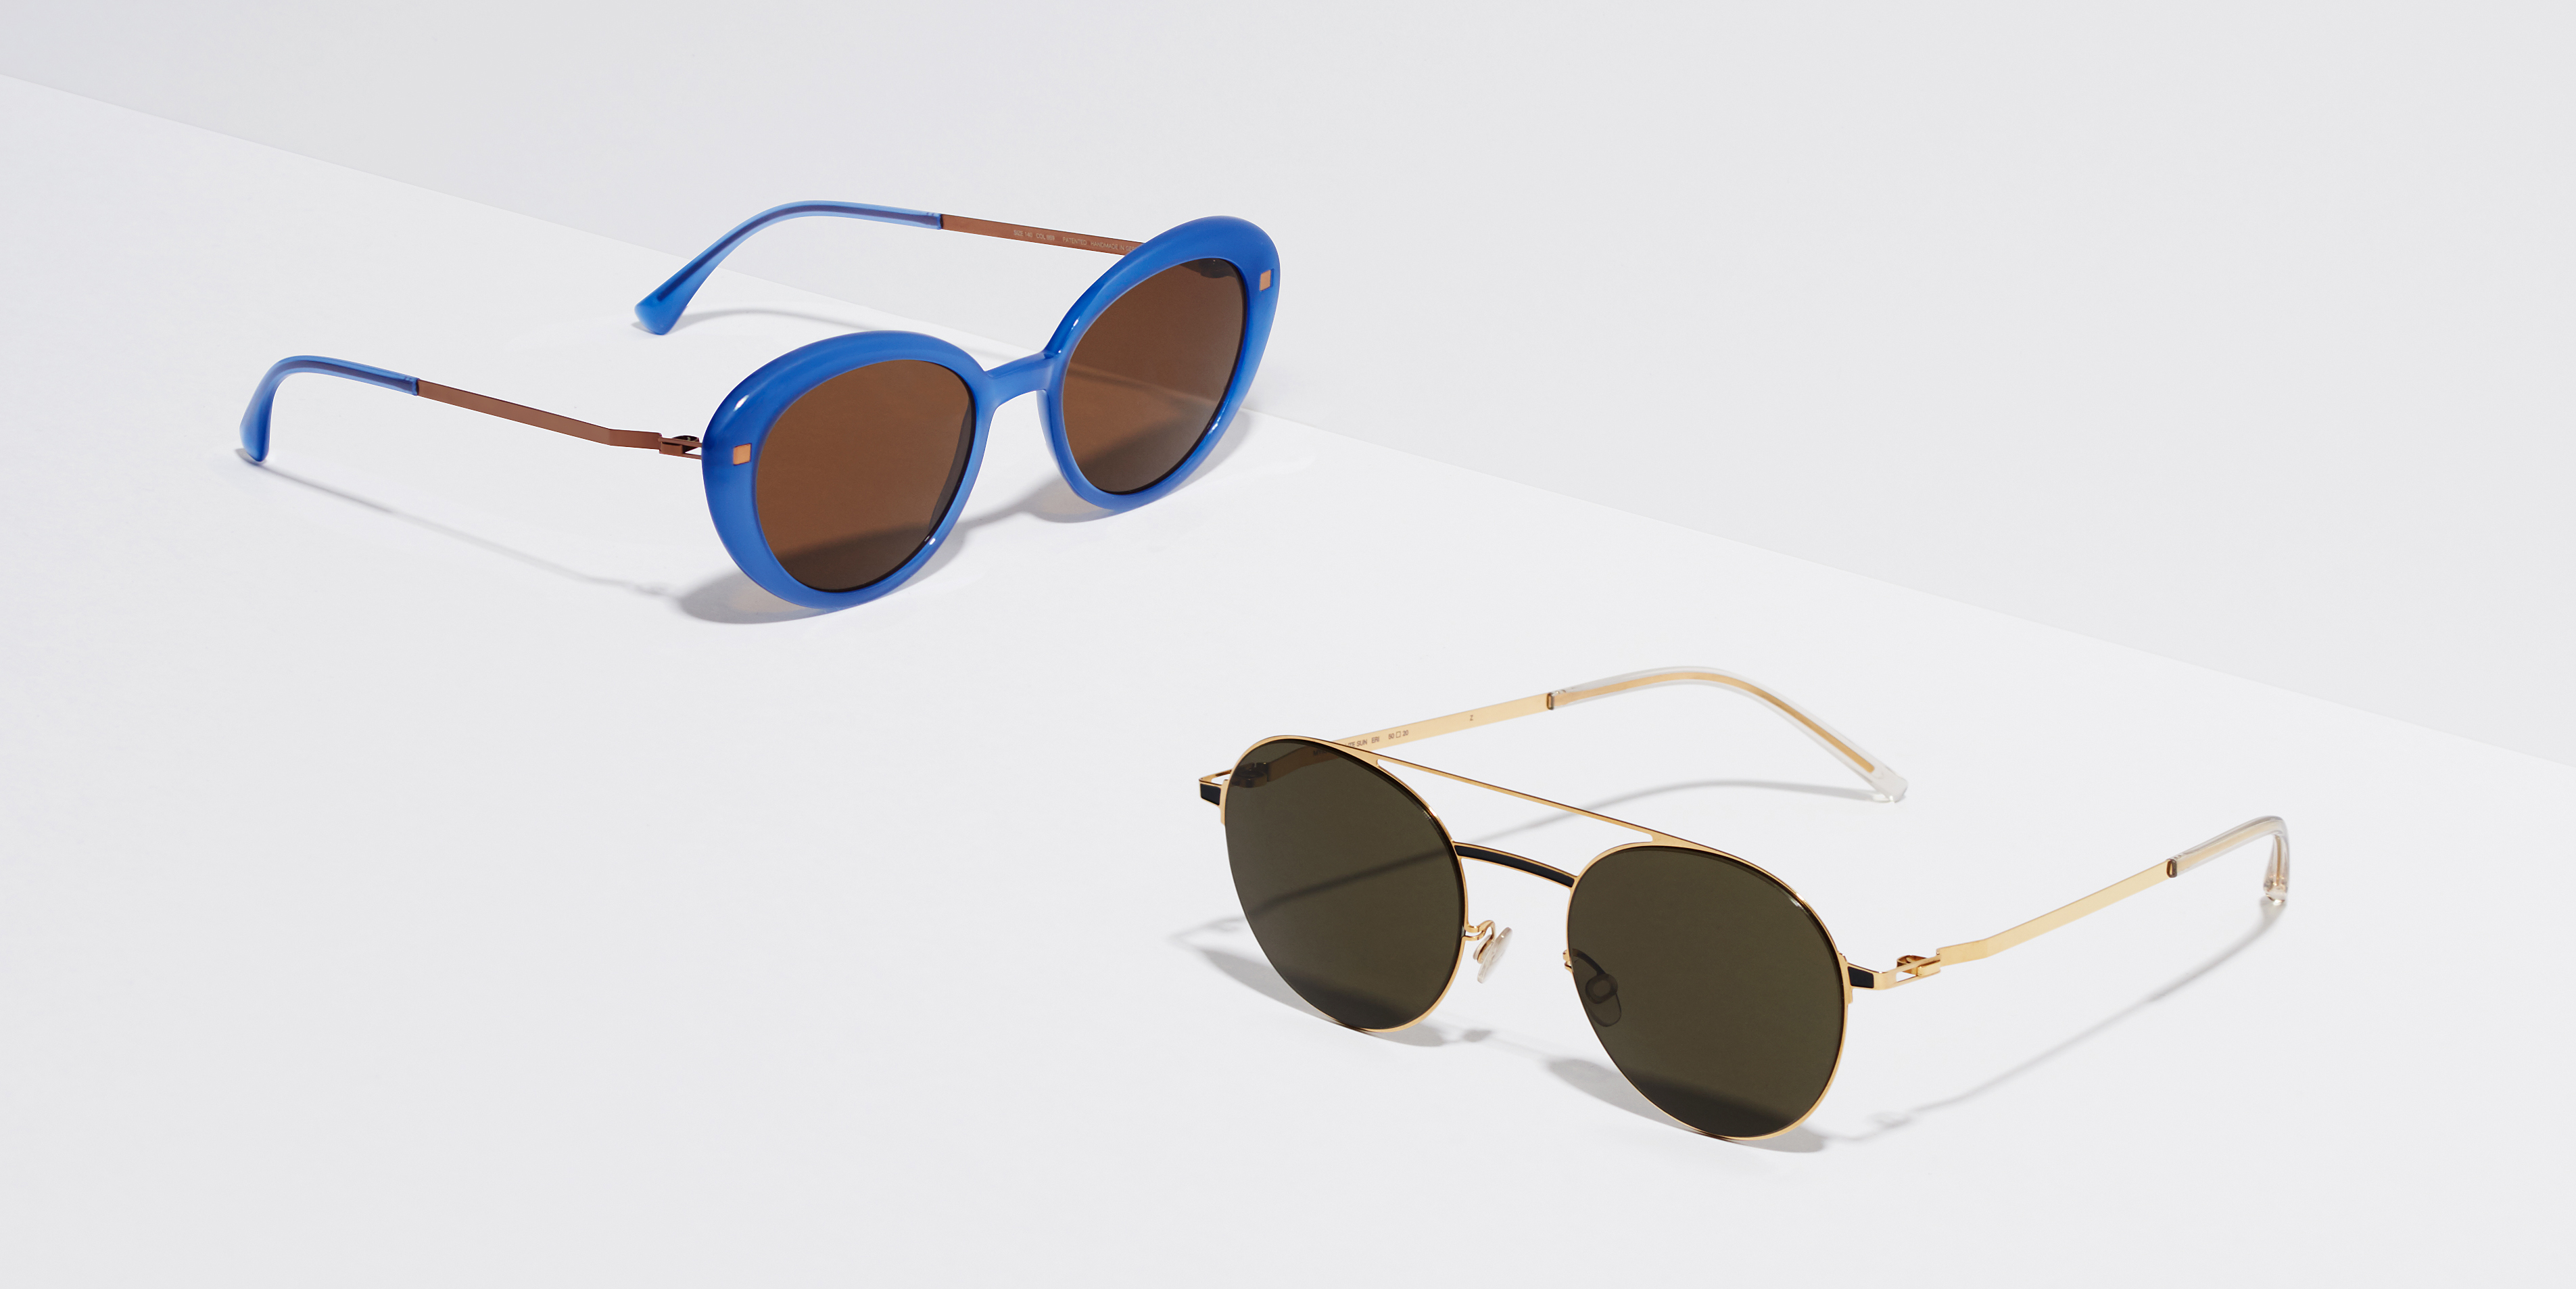 f87e5c715 MYKITA Lite Acetate Sun Luava C88 Misty Blue Shiny Copper Brown Solid  MYKITA Lite Acetate Sun